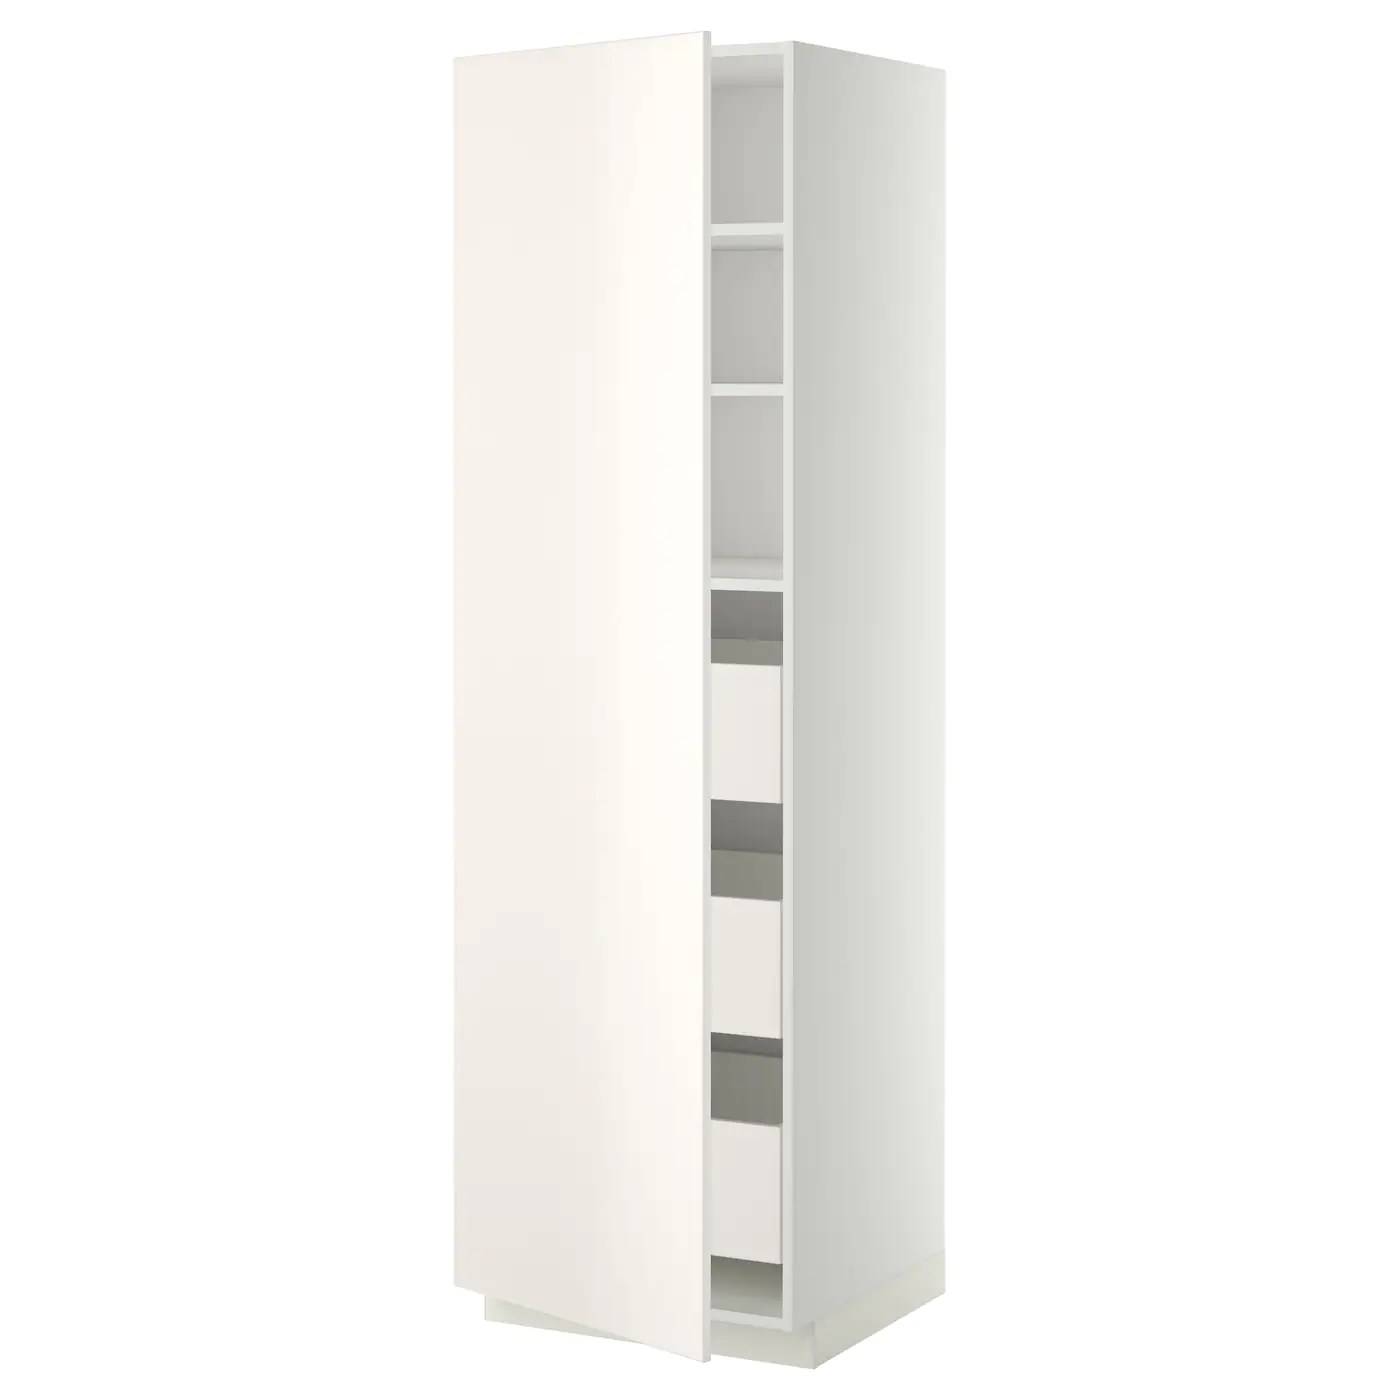 Ikea Metod Pdf Metod Maximera High Cabinet With Drawers White Veddinge White